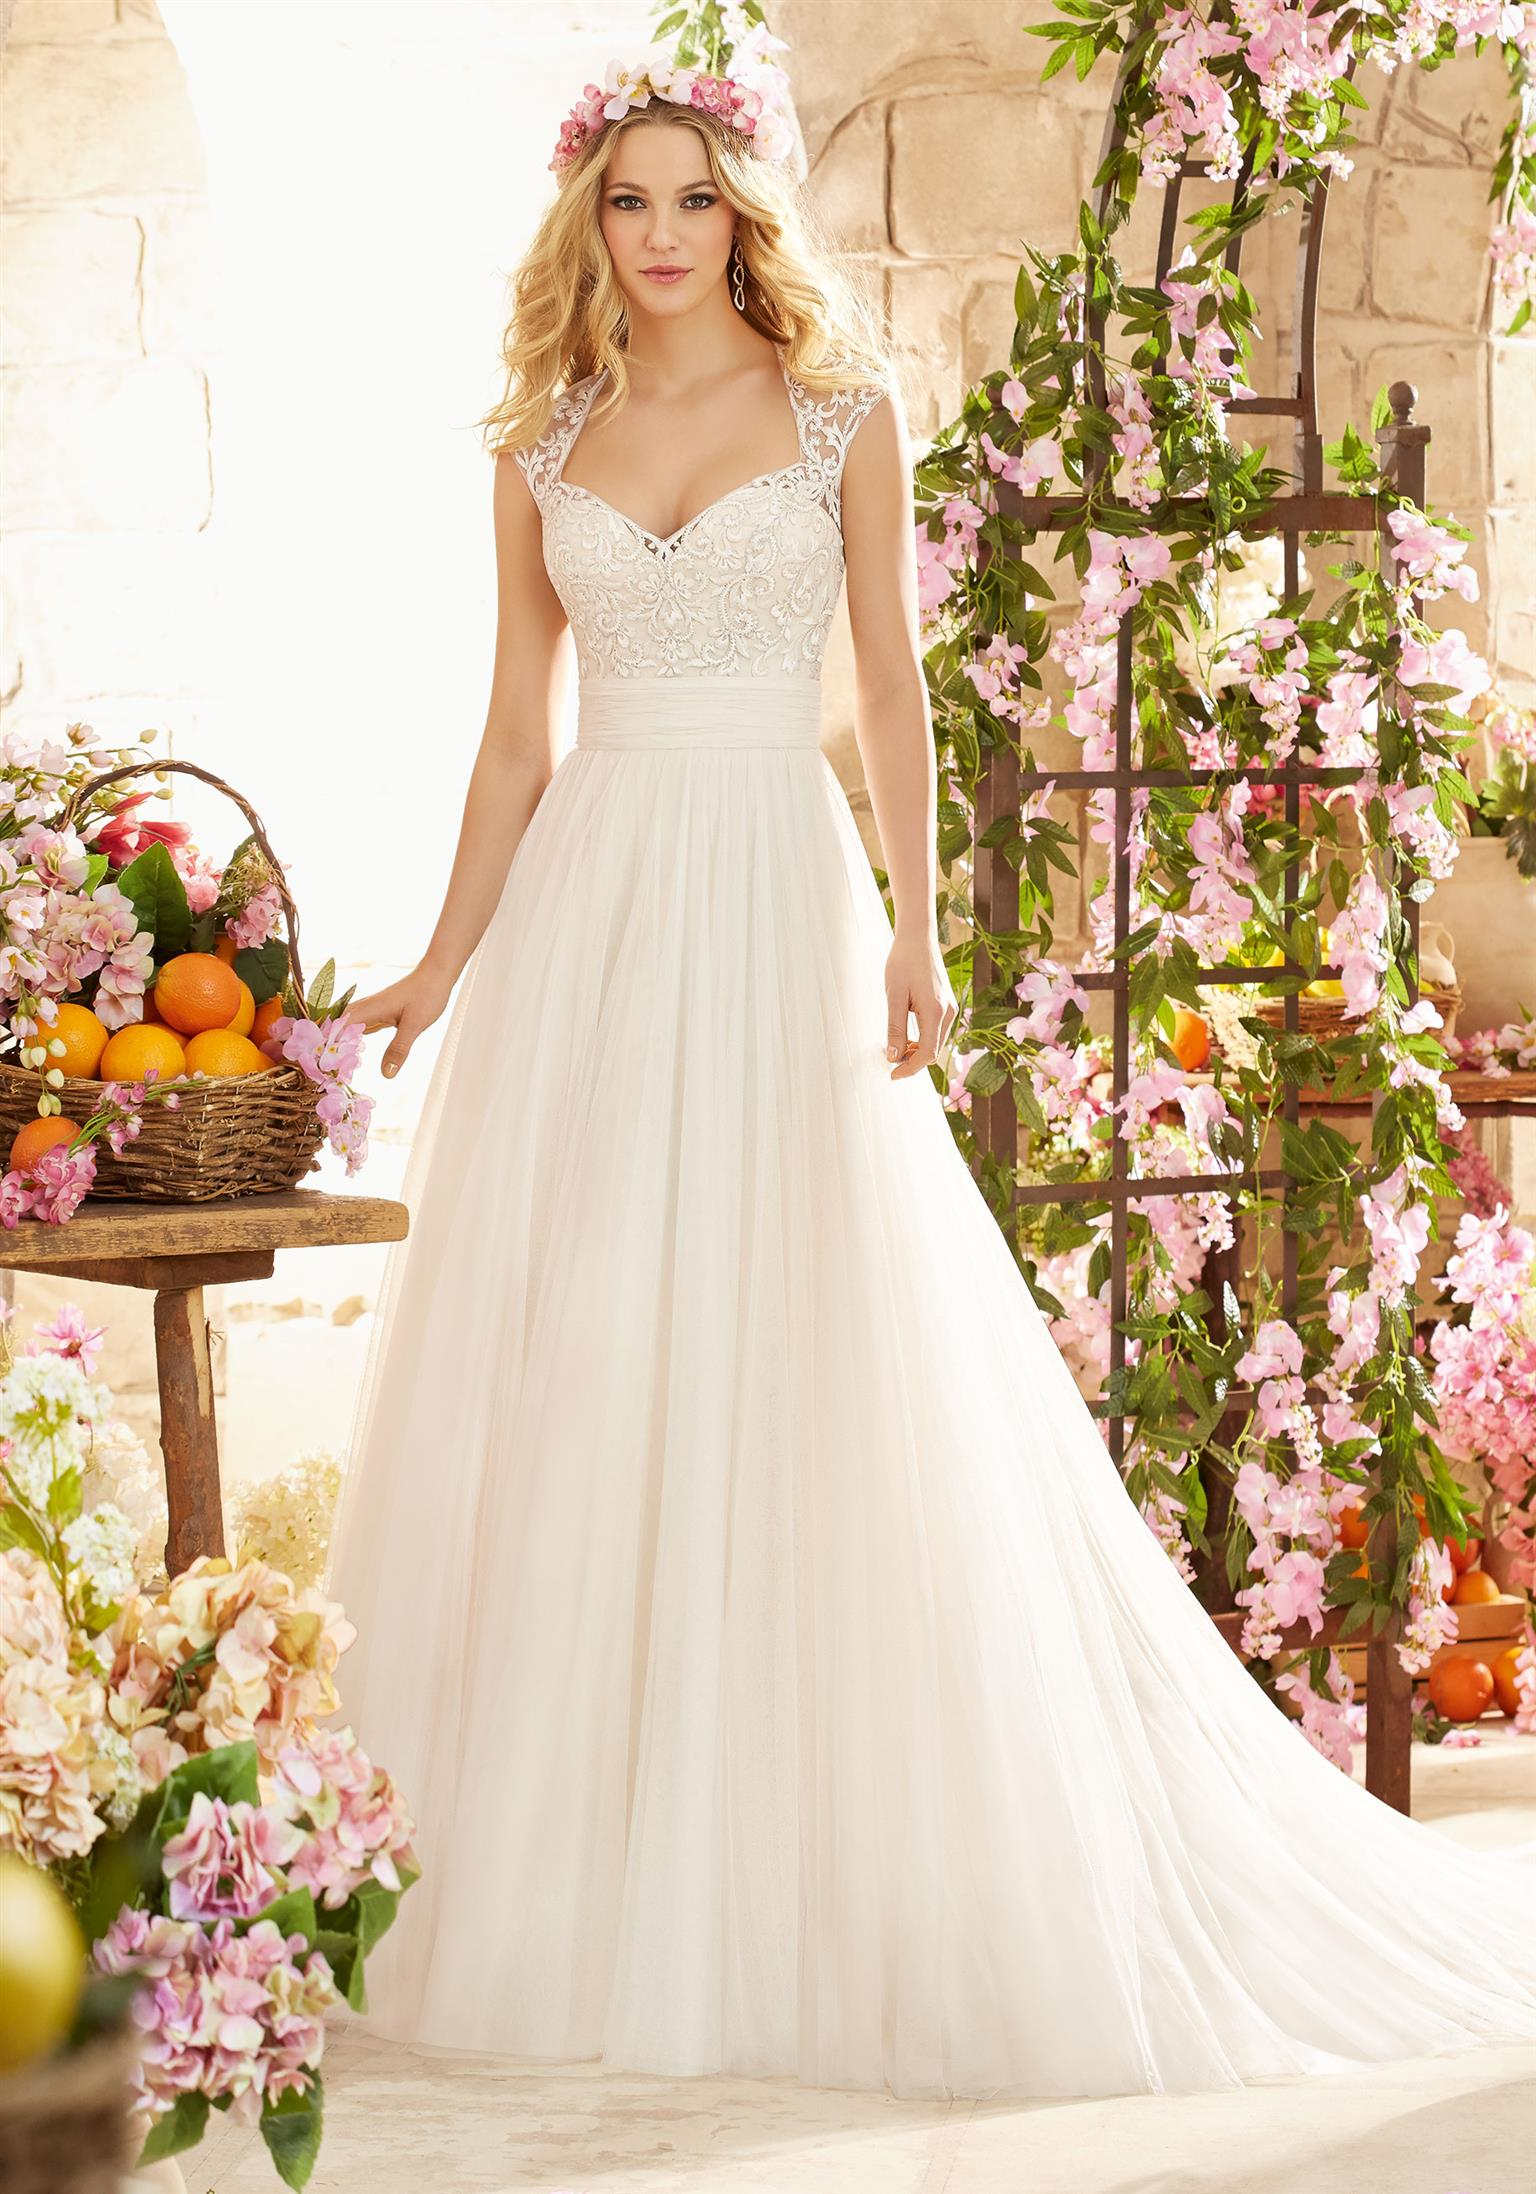 Free wedding gown fitting appointments! We rent and sell top international brands